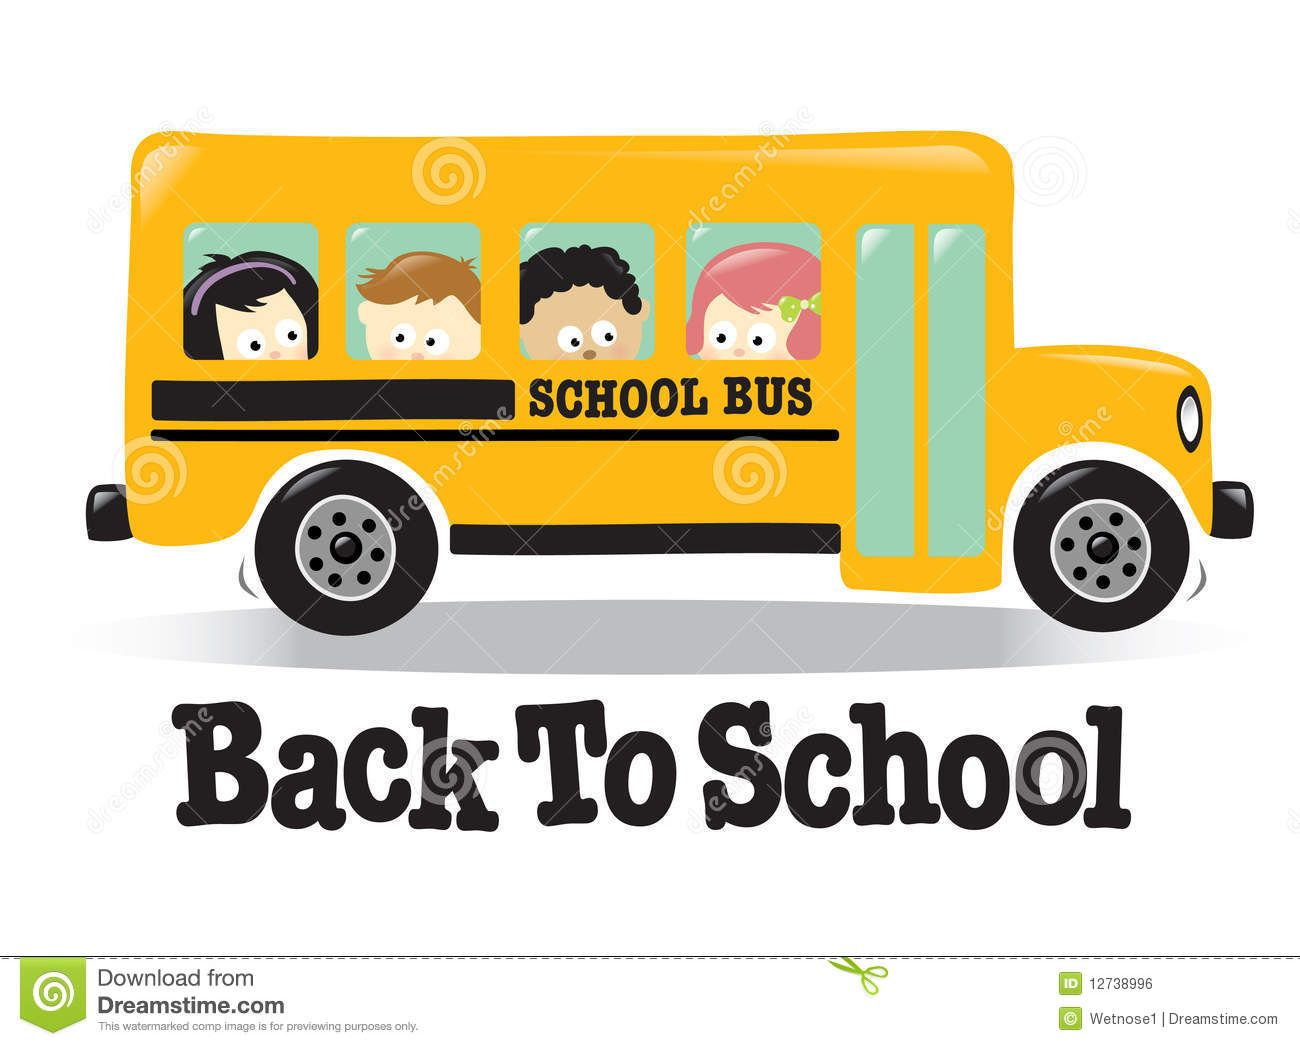 Bus clipart day trip. Free animated cute back